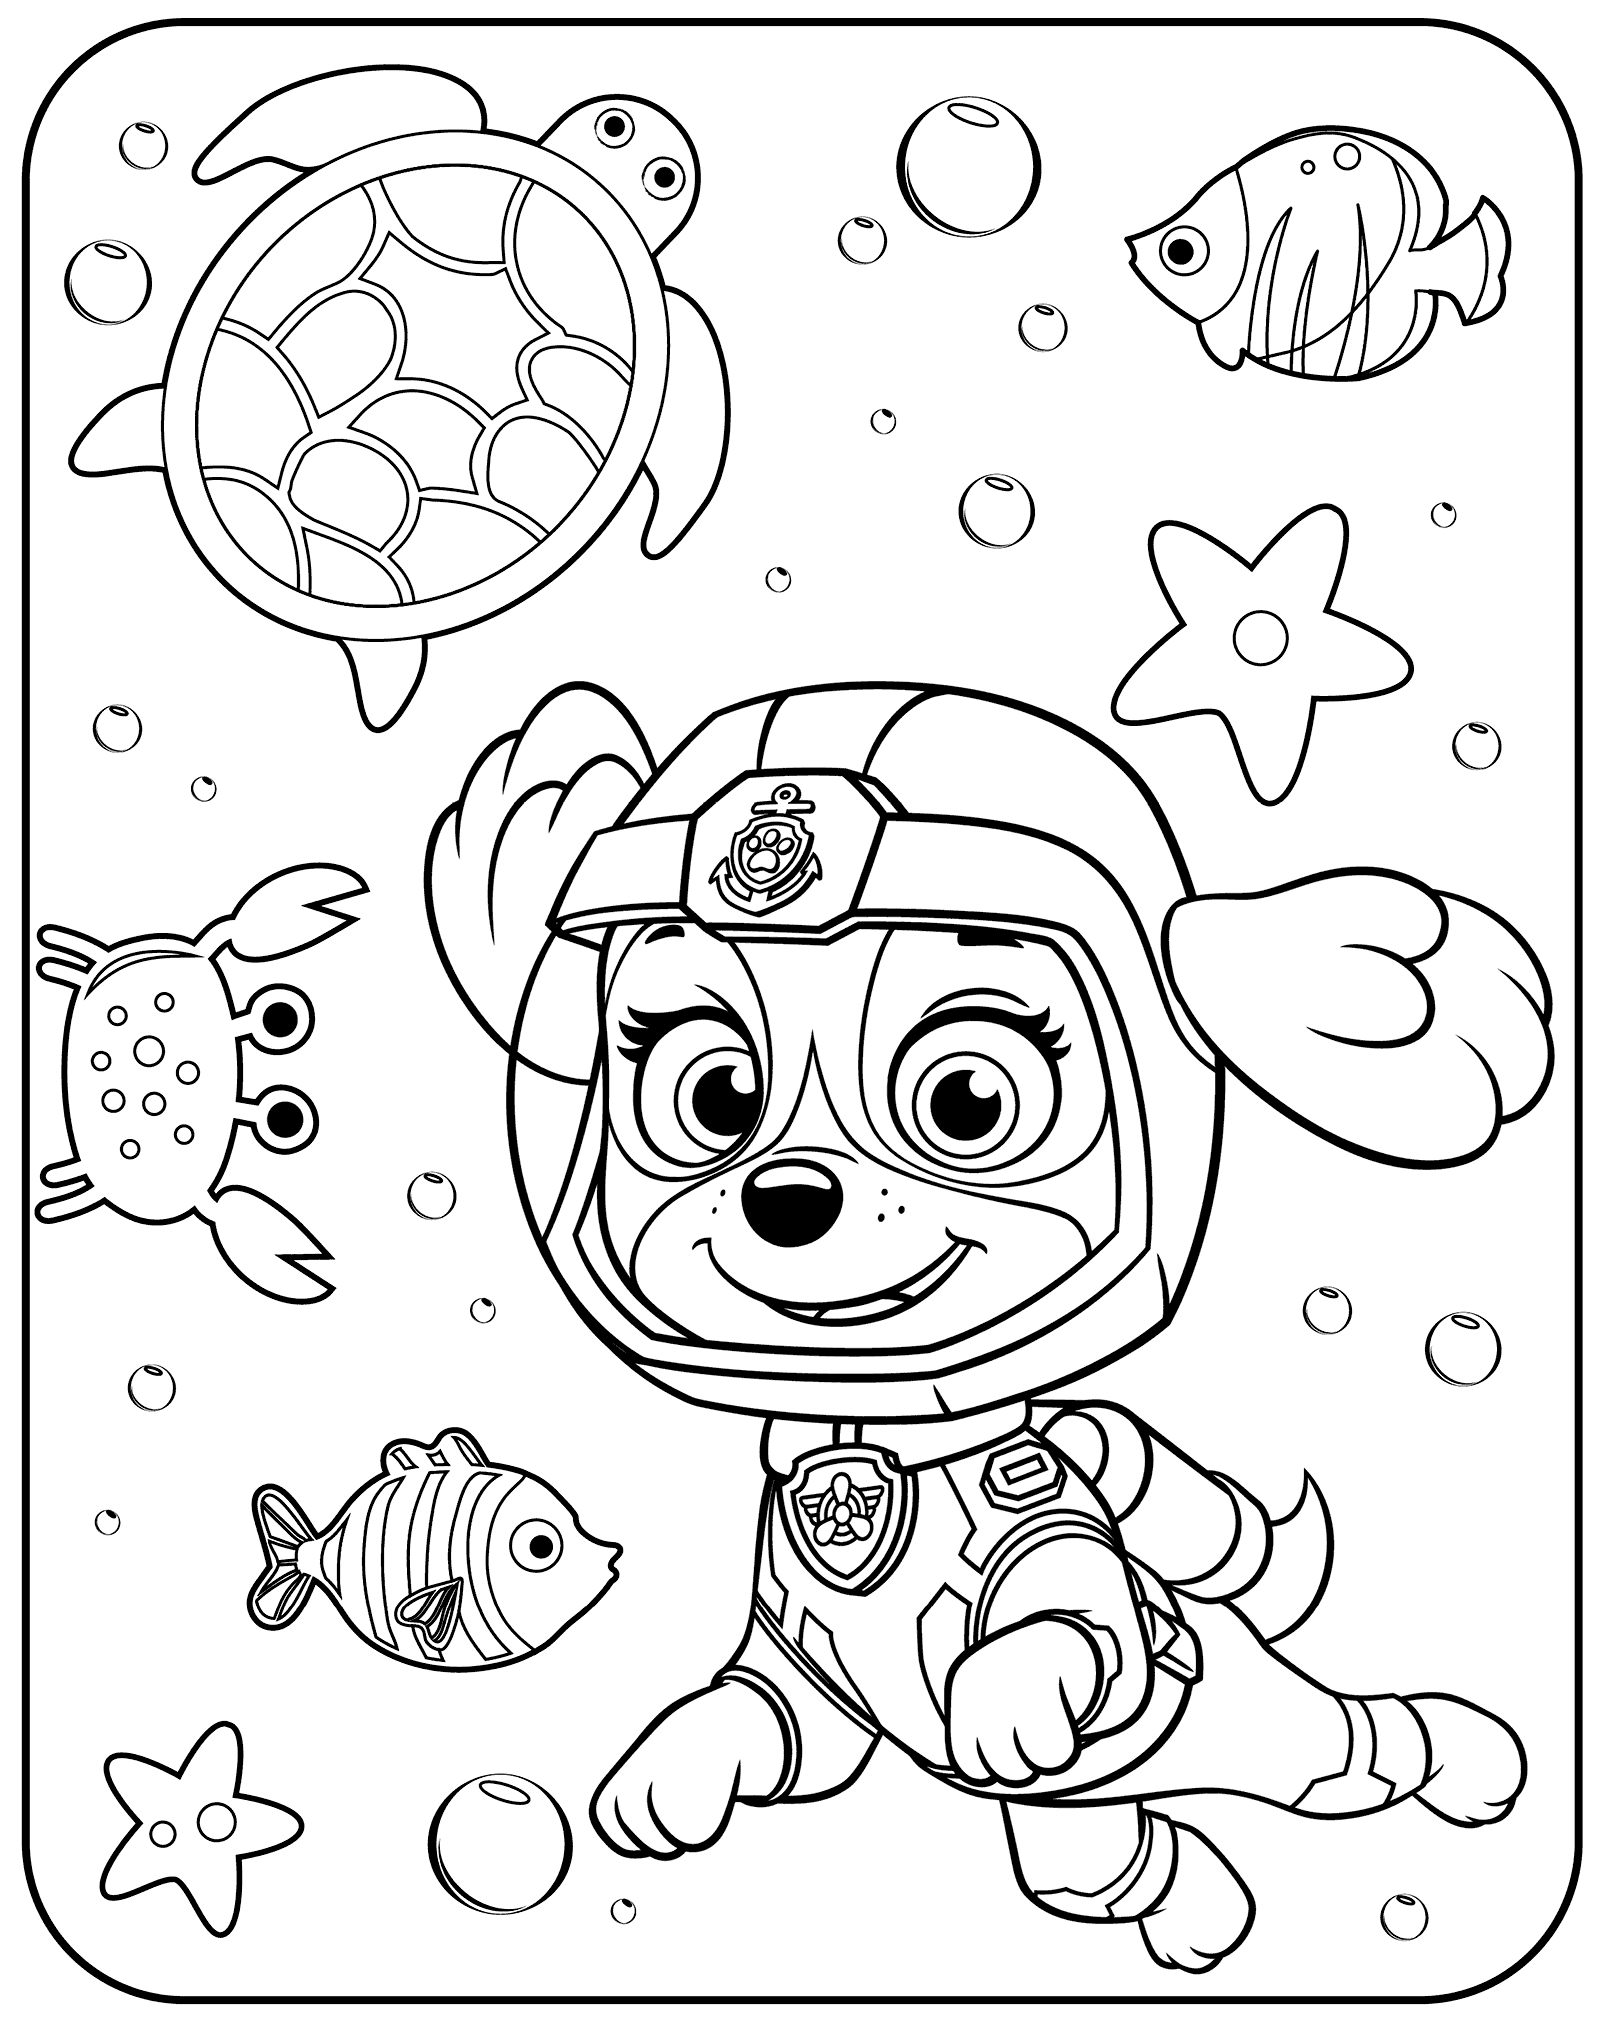 paw patrol coloring book chase paw patrol coloring pages to download and print for free paw book coloring patrol